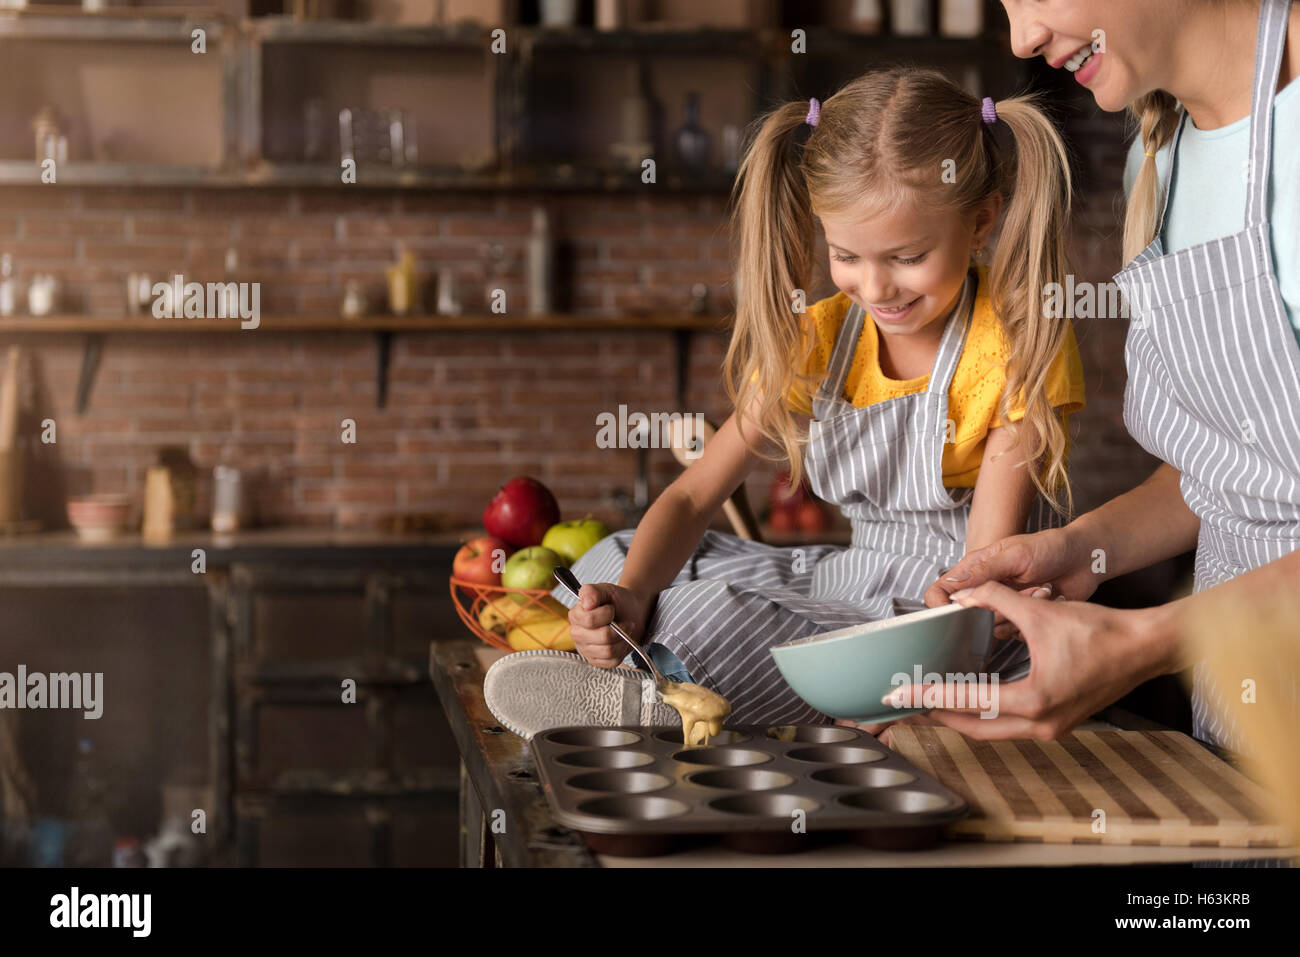 Smiling involved girl helping her mother cooking pastry - Stock Image